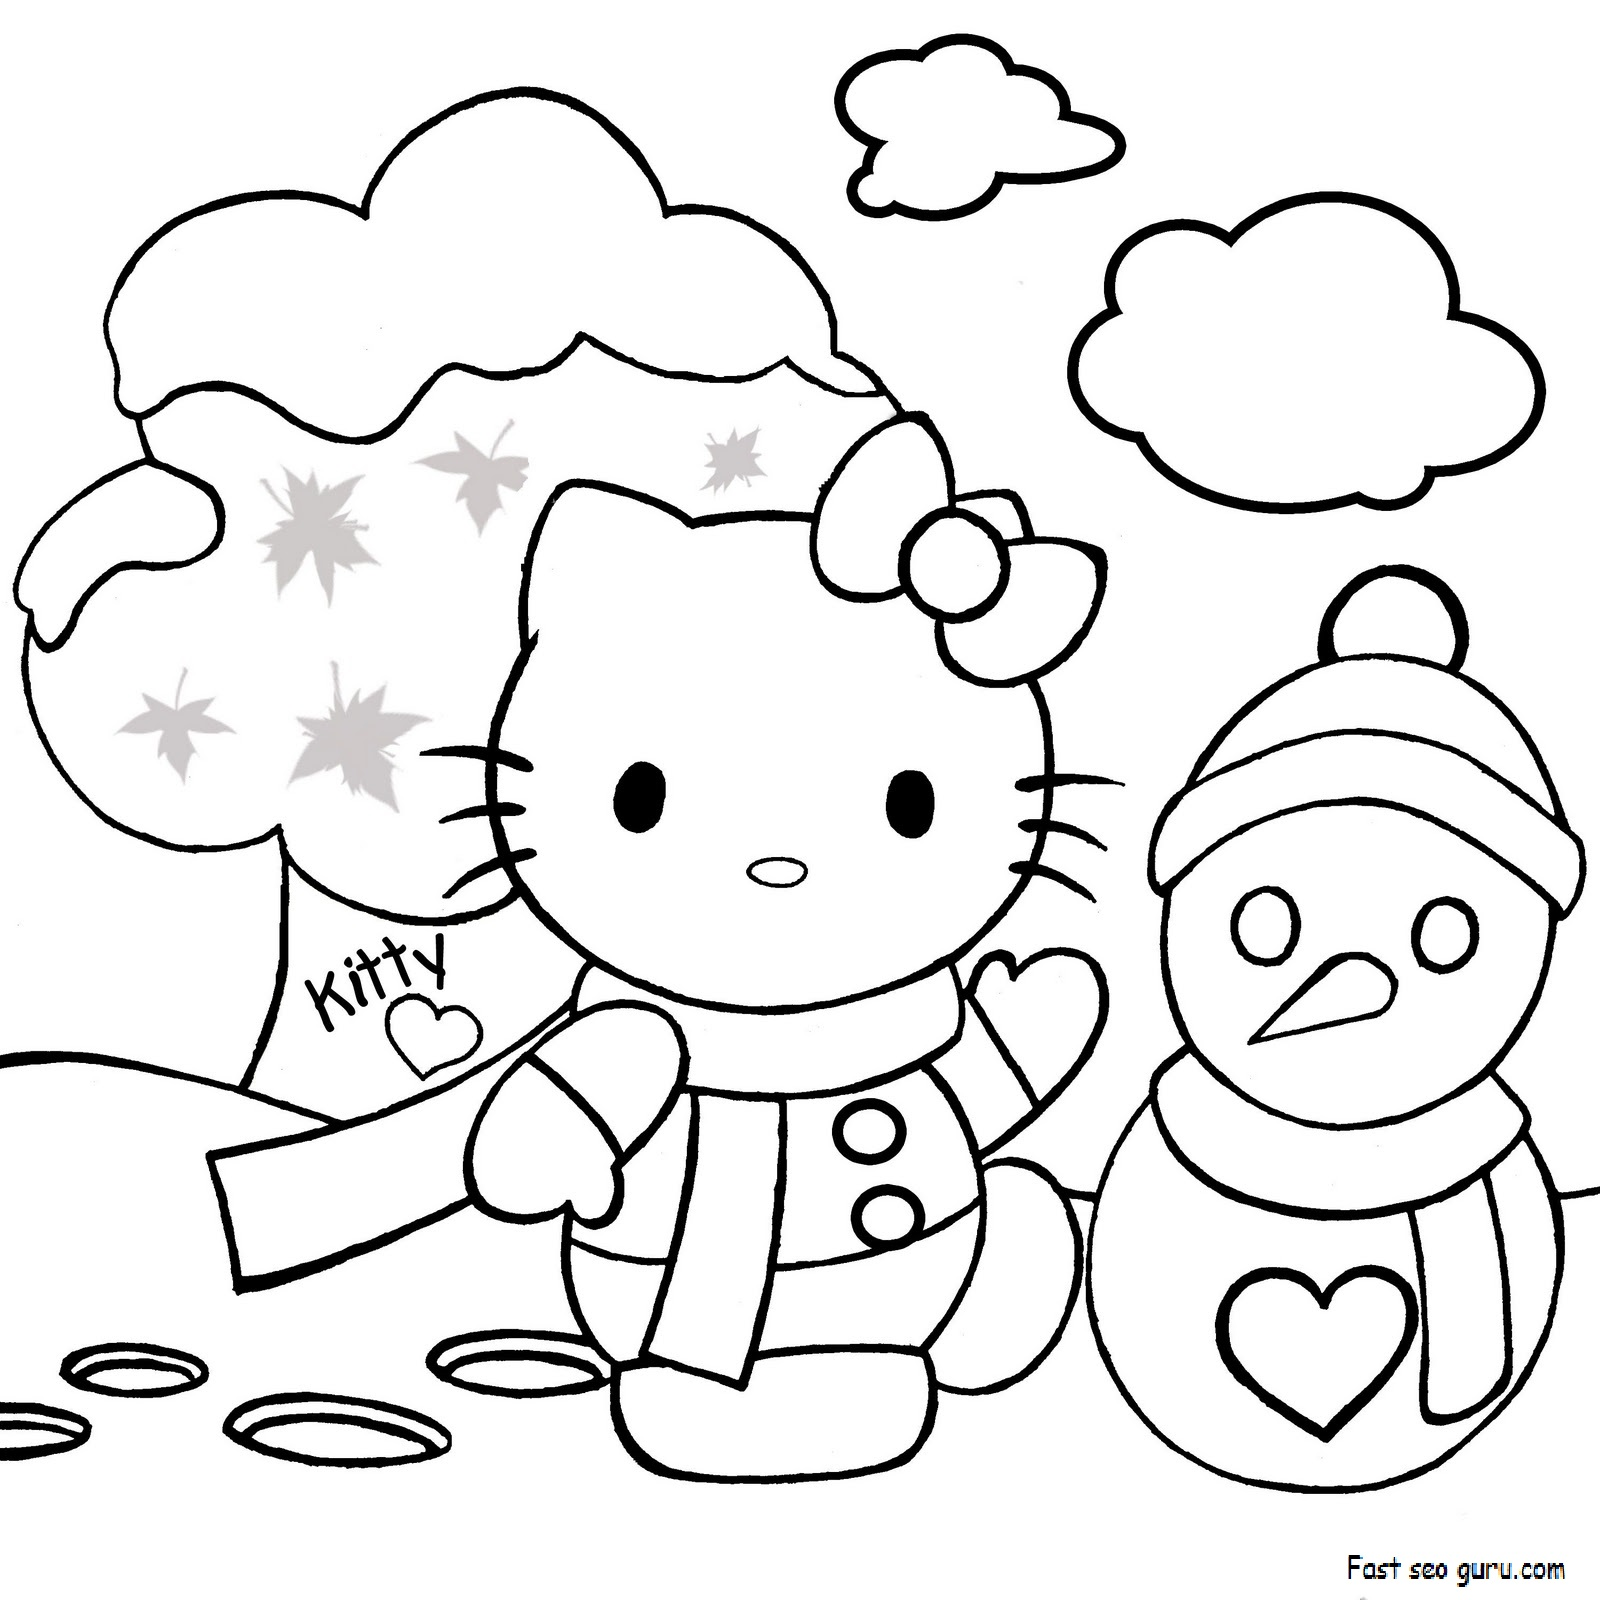 Hello Kitty Merry Christmas Coloring Pages : Print out merry christmas hello kitty coloring pages